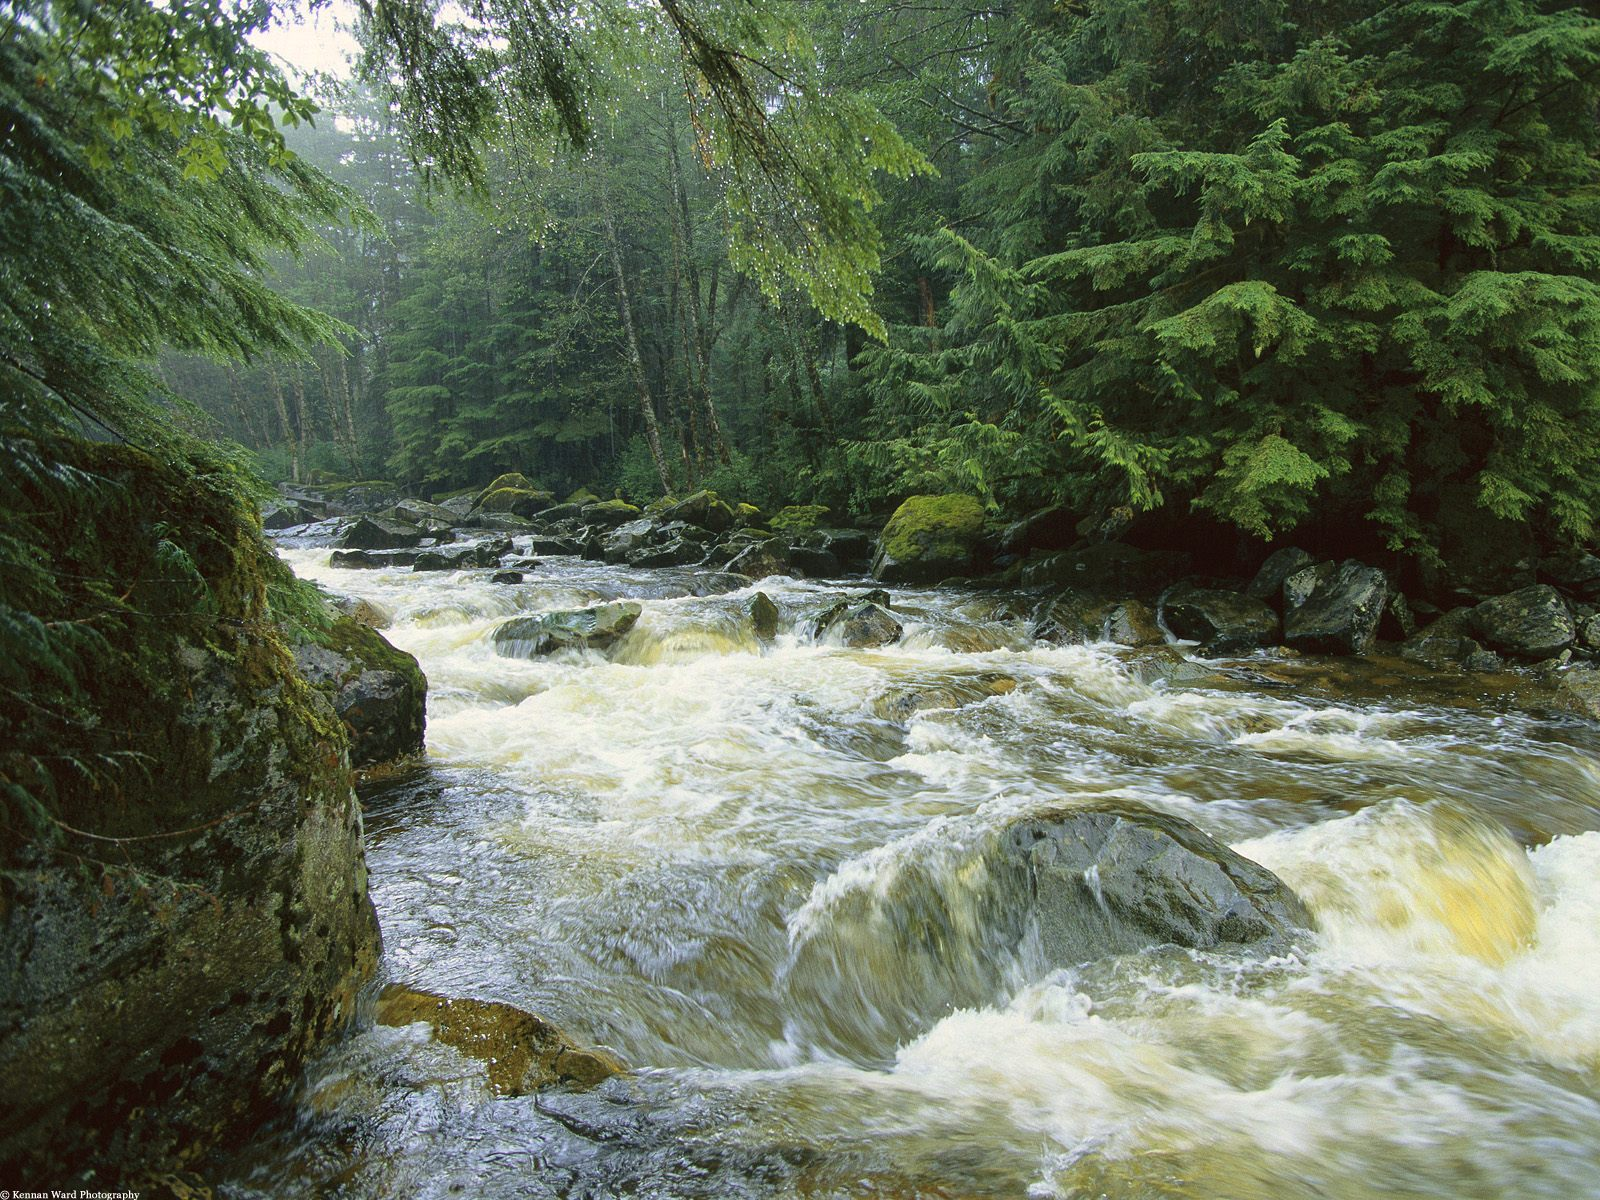 Rivers And Streams Rushing Salmon Stream Princess Royal Island Canada